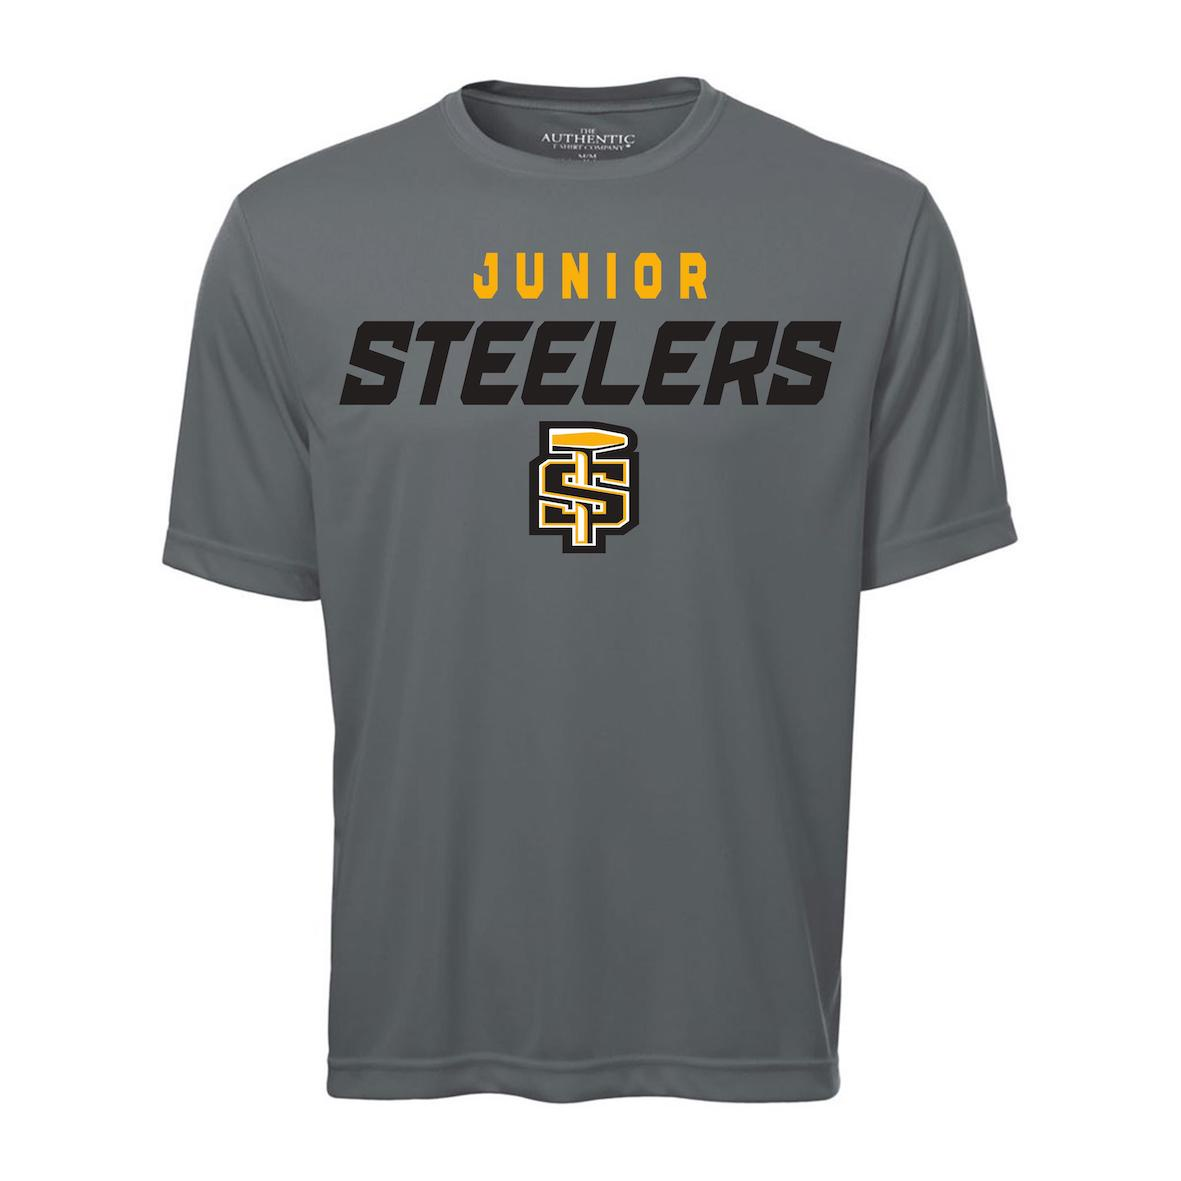 8118fa86e Junior Steelers Short Sleeve Dry Fit Shirt - Scoff s Hockey Shop